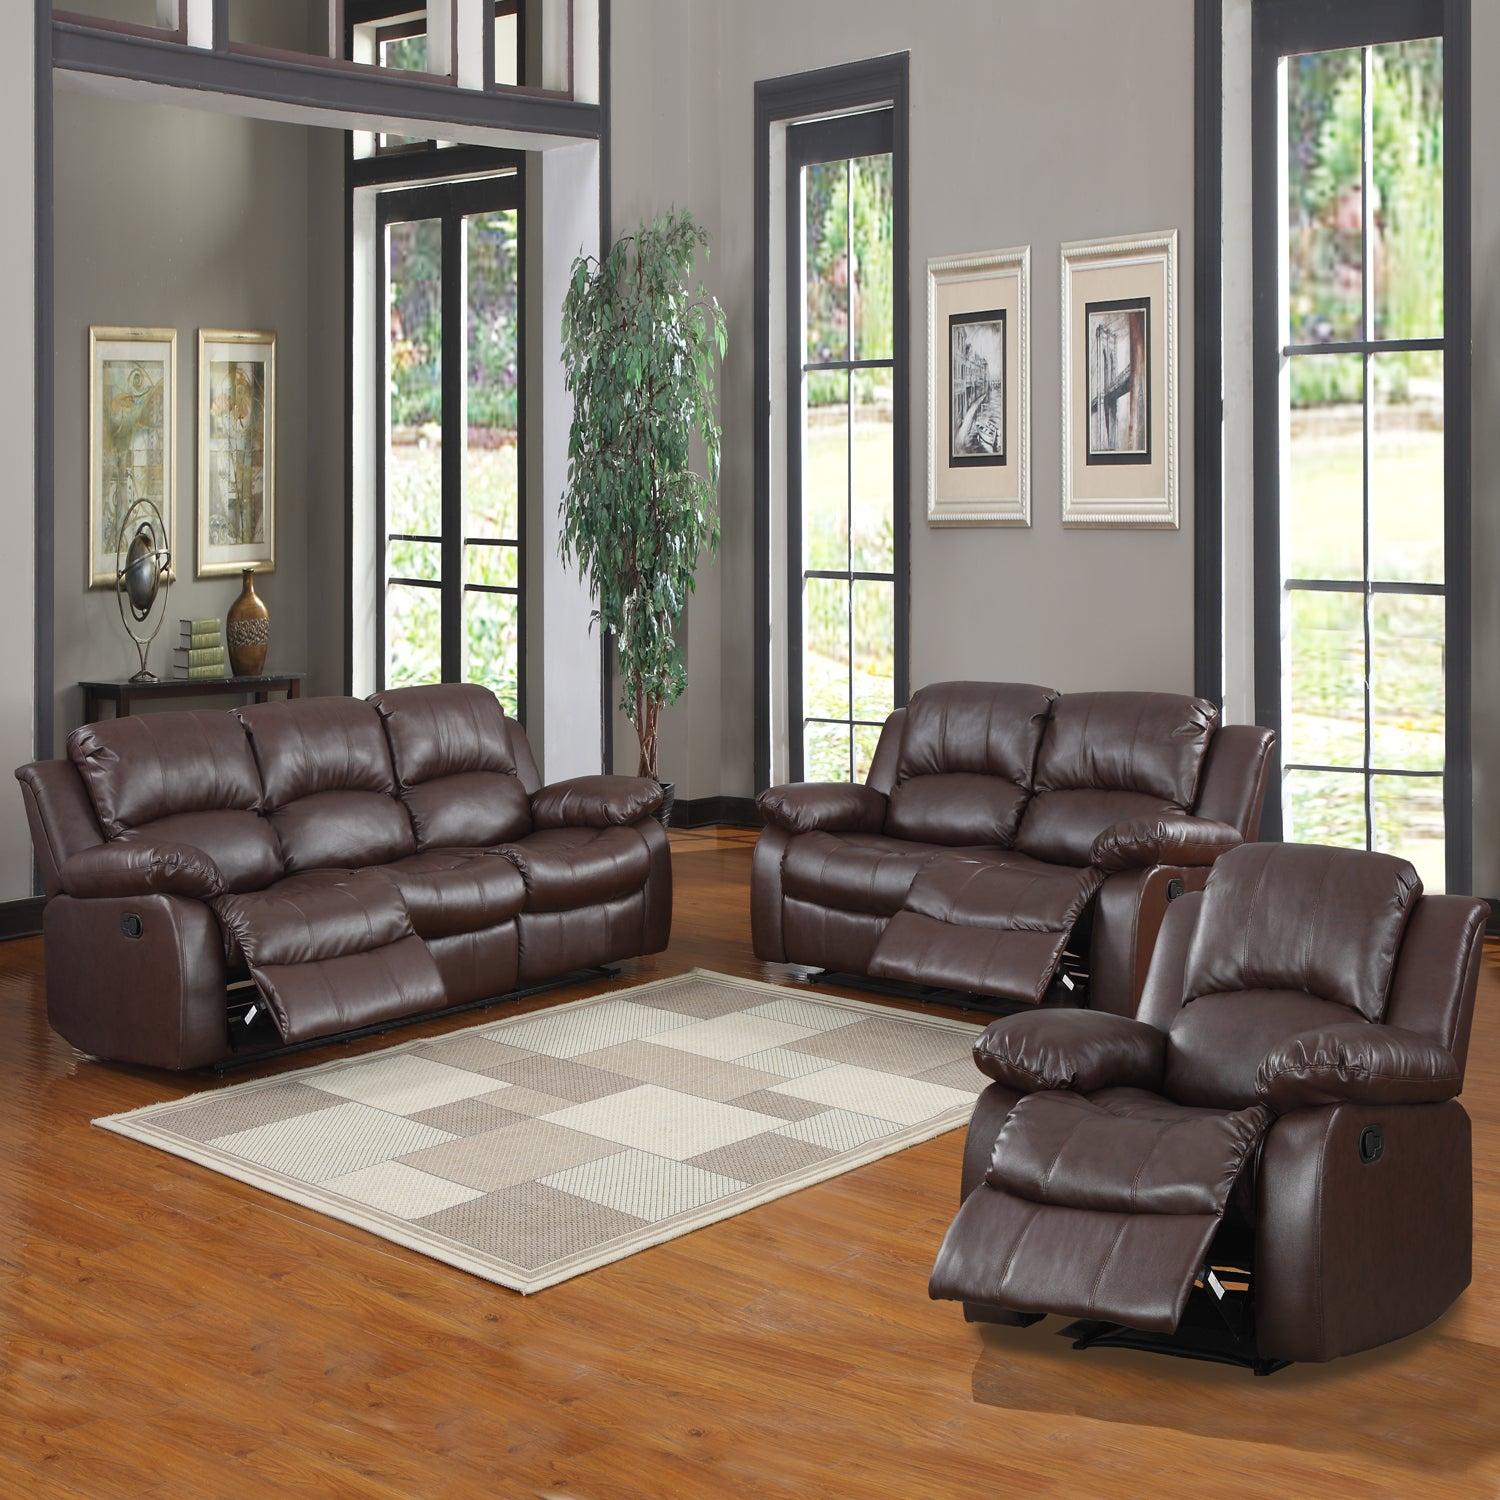 coleford brown reclining living room set set of 3